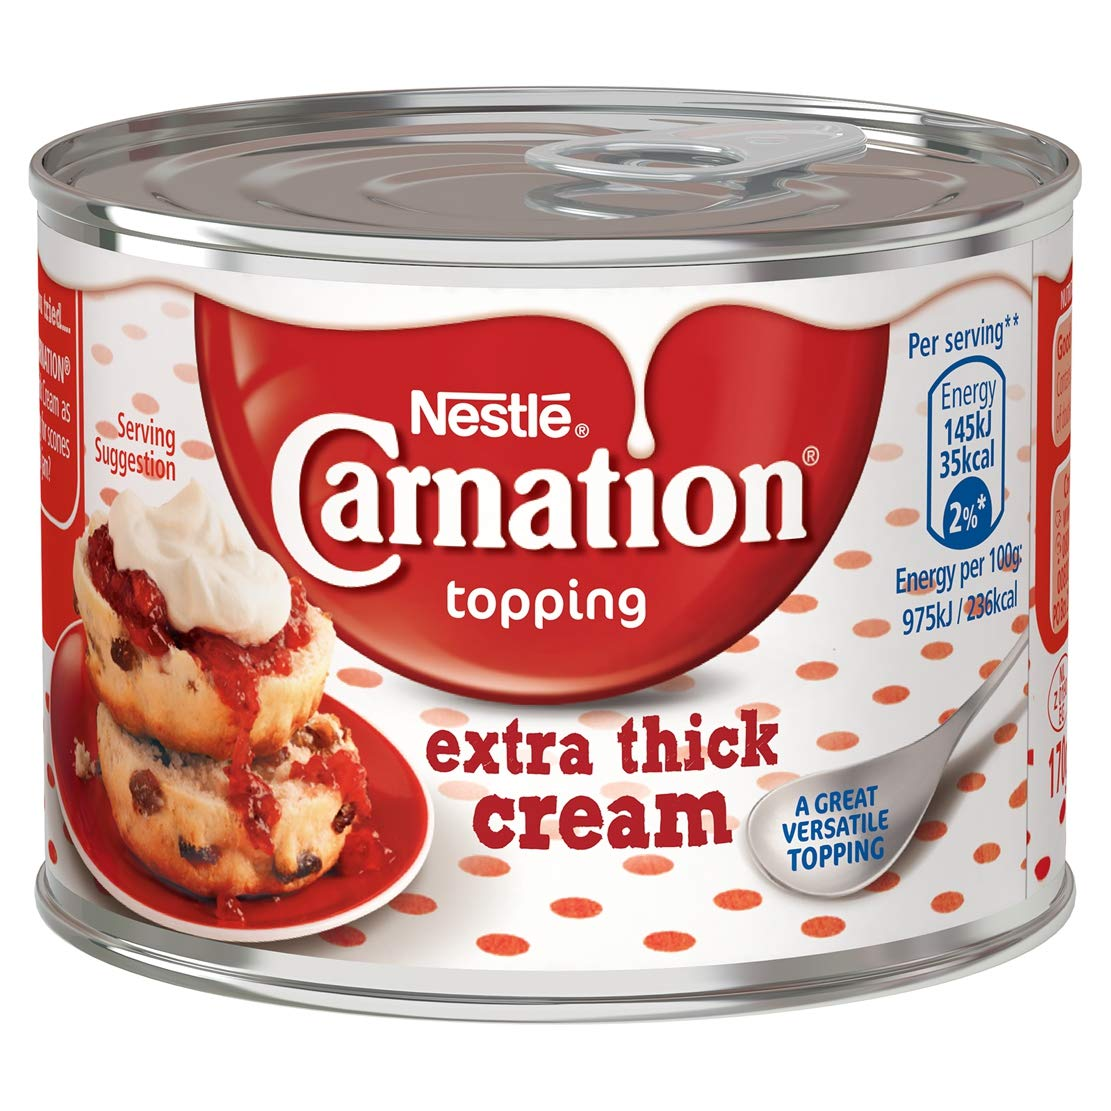 Nestlé Carnation Extra Thick Cream Topping, 170 g (Pack of 12)